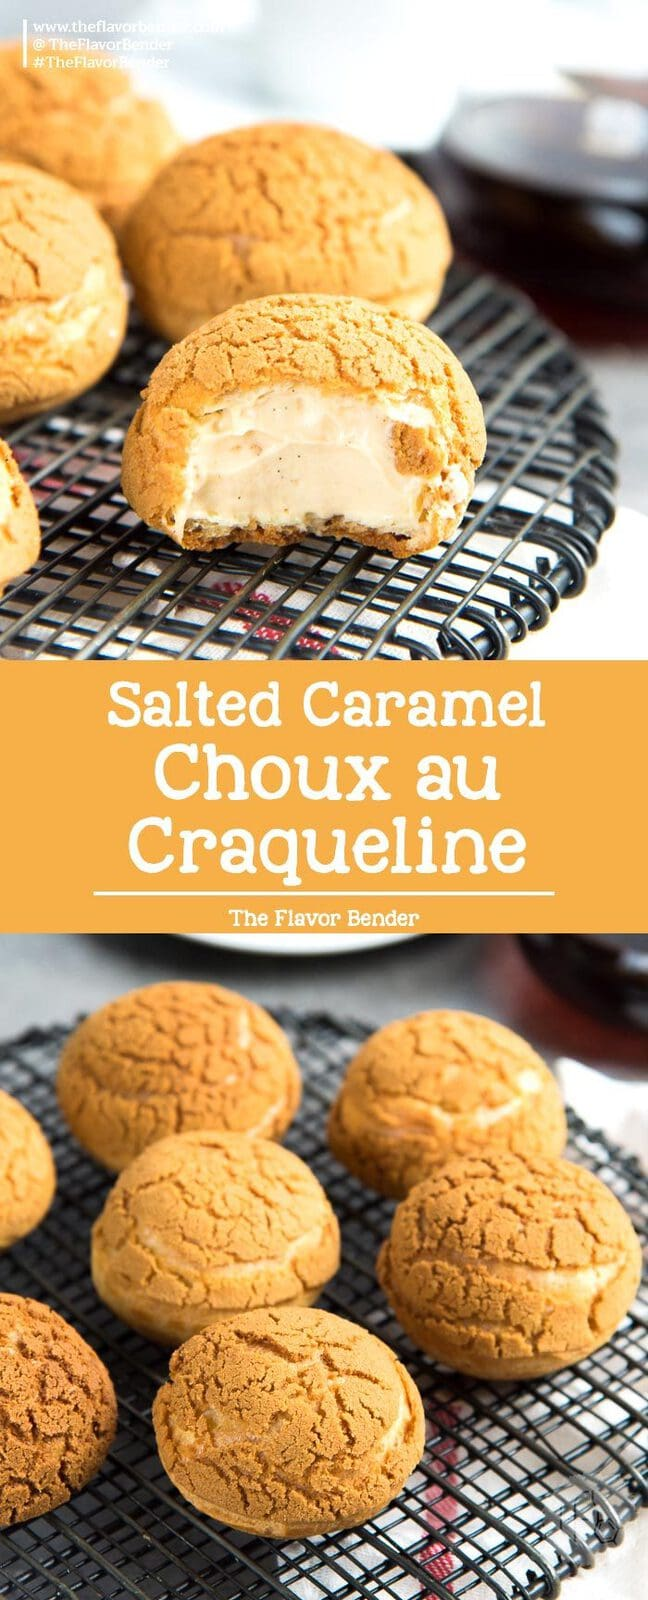 Choux au Craquelin with Salted Caramel Cream - A crispy choux pastry with a cookie crust, filled with a airy, and creamy salted caramel diplomat cream. #ChouxPastry #ChouxAuCraquelin #SaltedCaramel